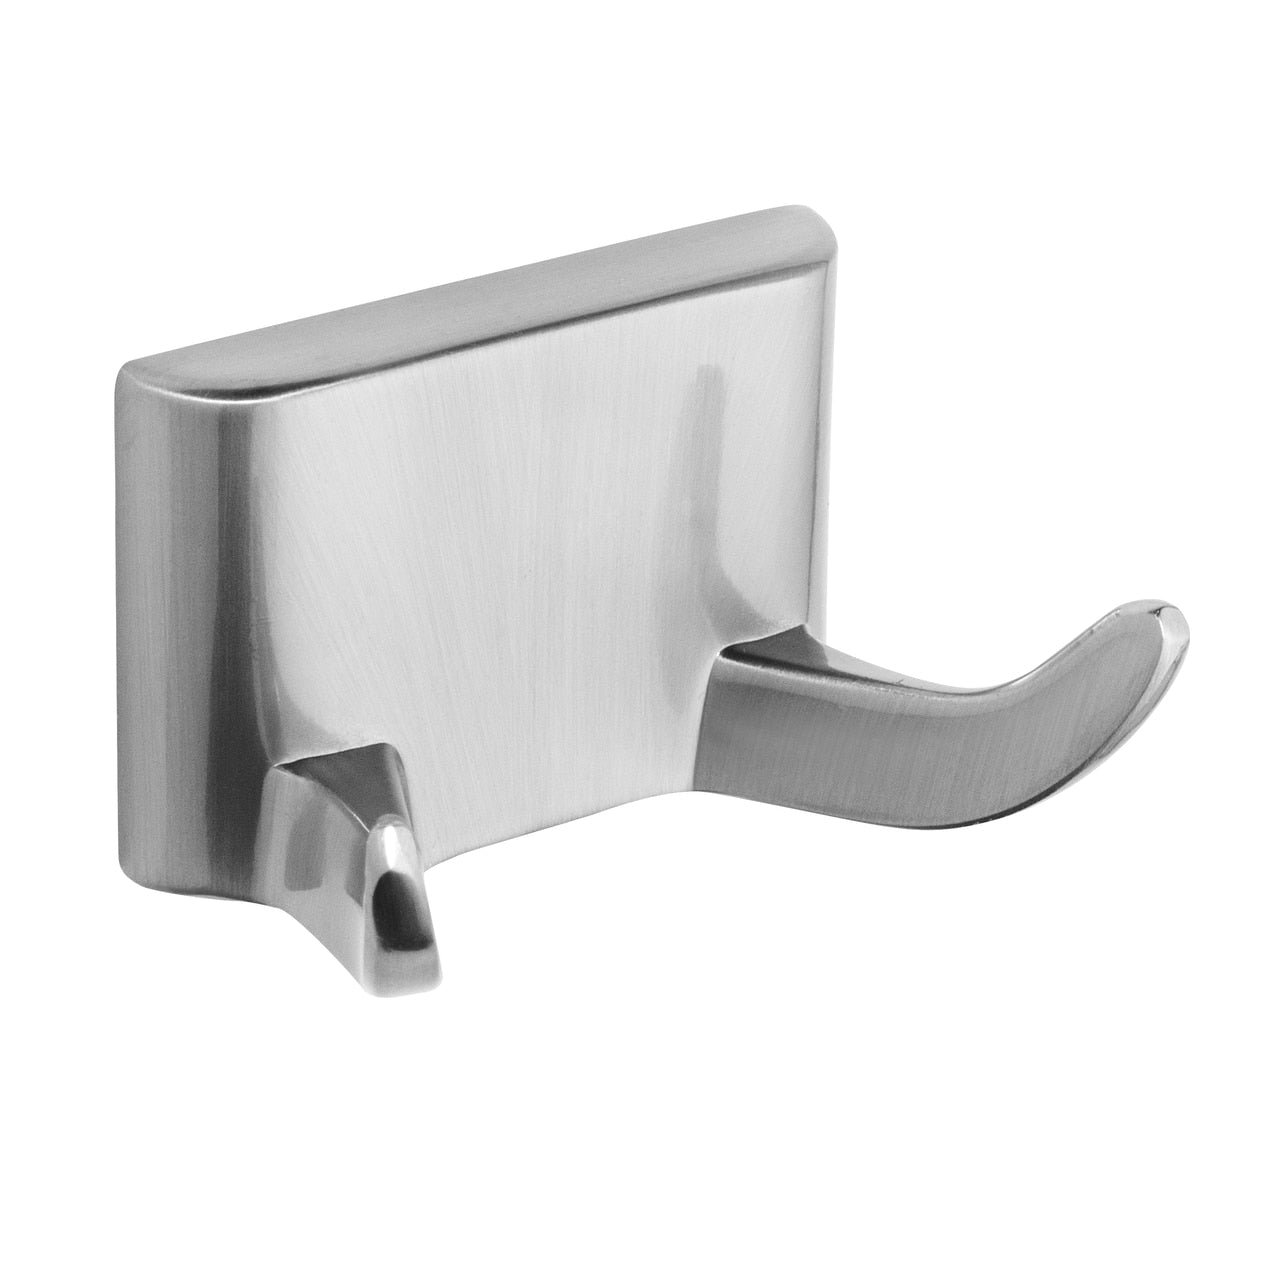 Designers Impressions Eclipse Series Satin Nickel Robe Hook